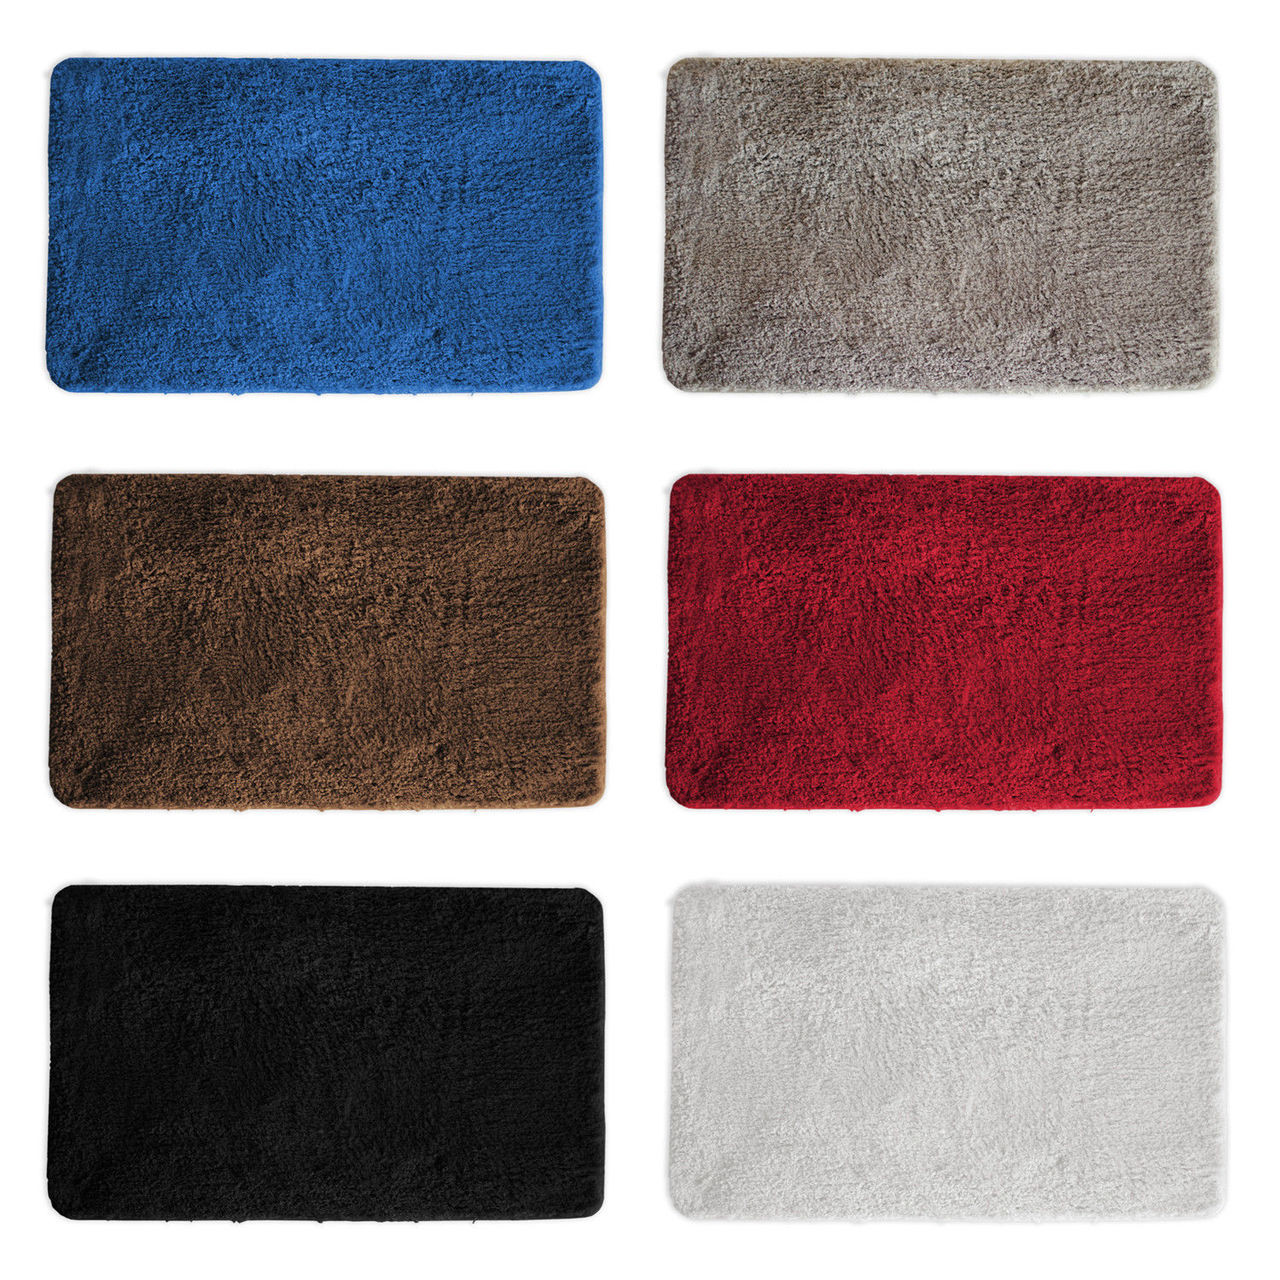 Mary Bathroom Rug Luxury Soft Plush Shaggy Thick Fluffy Microfiber